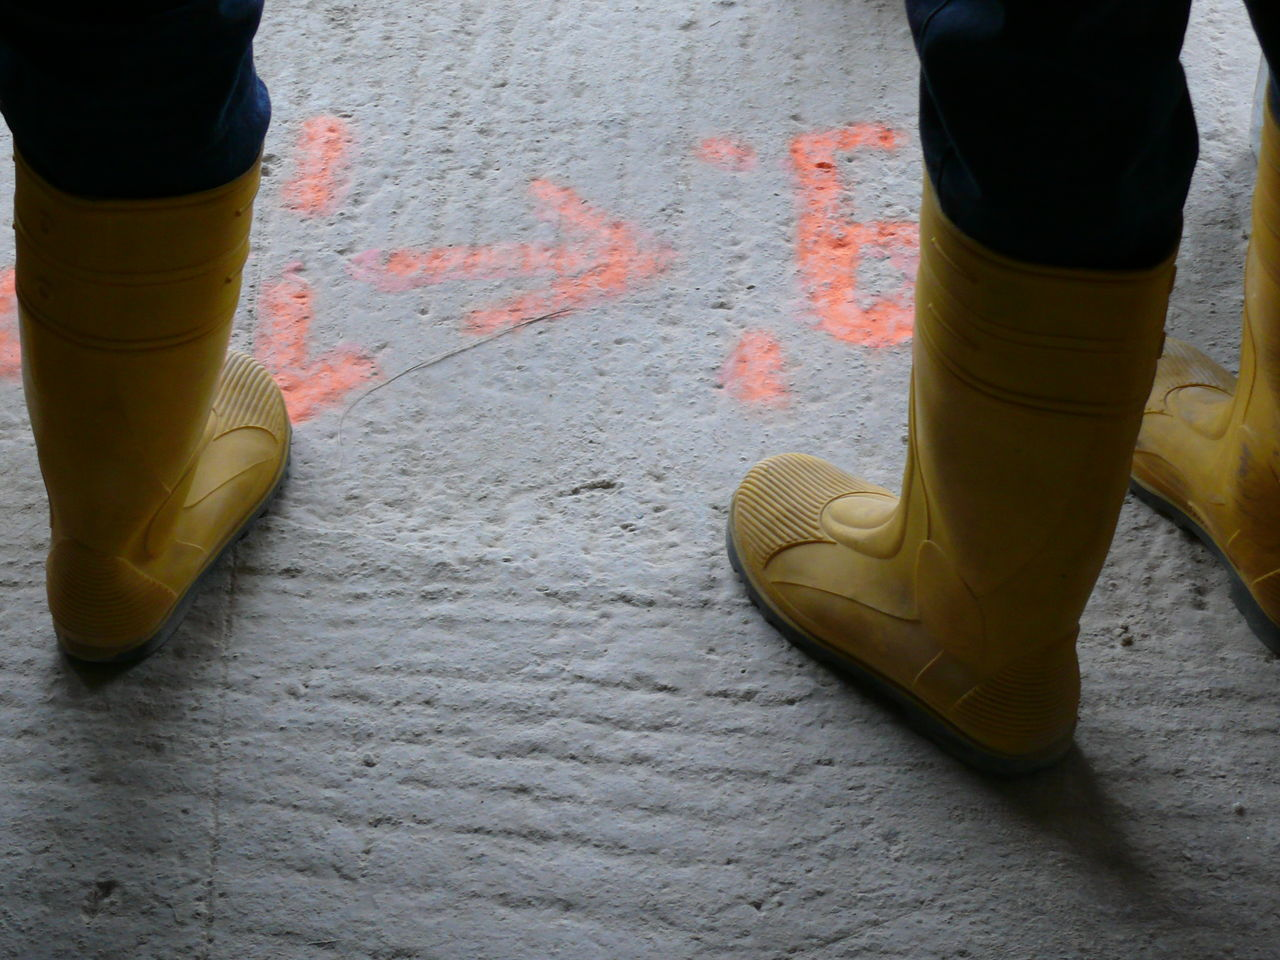 Concrete Construction Site Elbphilharmonie Hamburg Letters Marking Red Rubber Boots Yellow